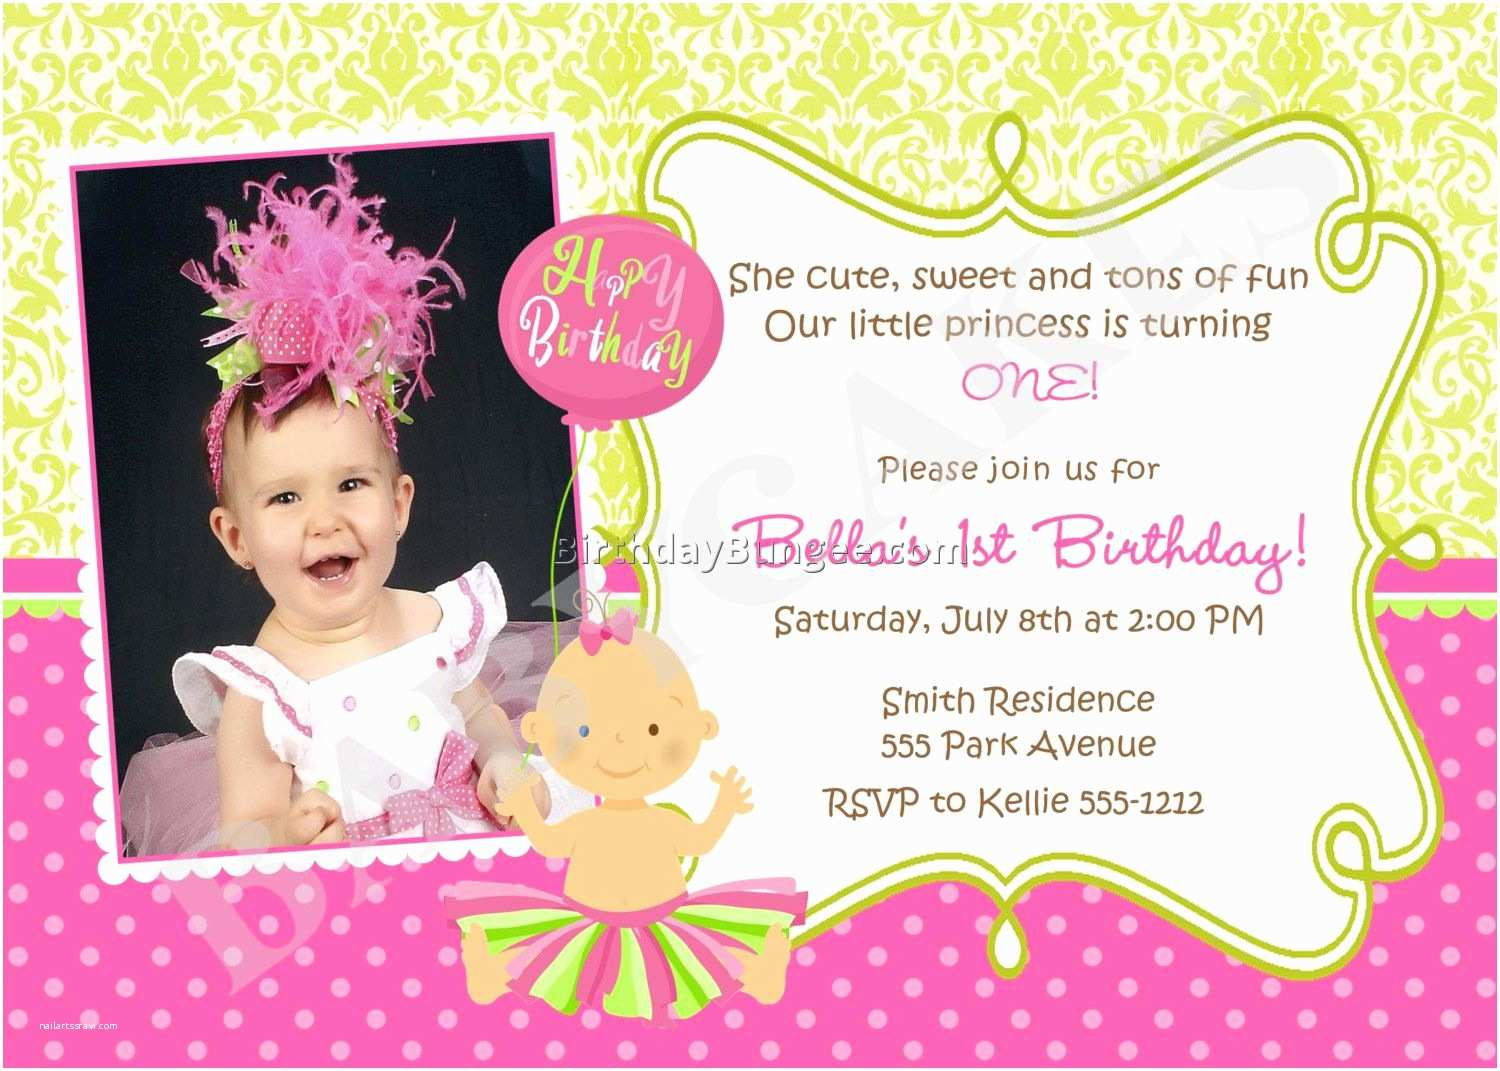 Birthday Invitation Wording 21 Kids Birthday Invitation Wording that We Can Make